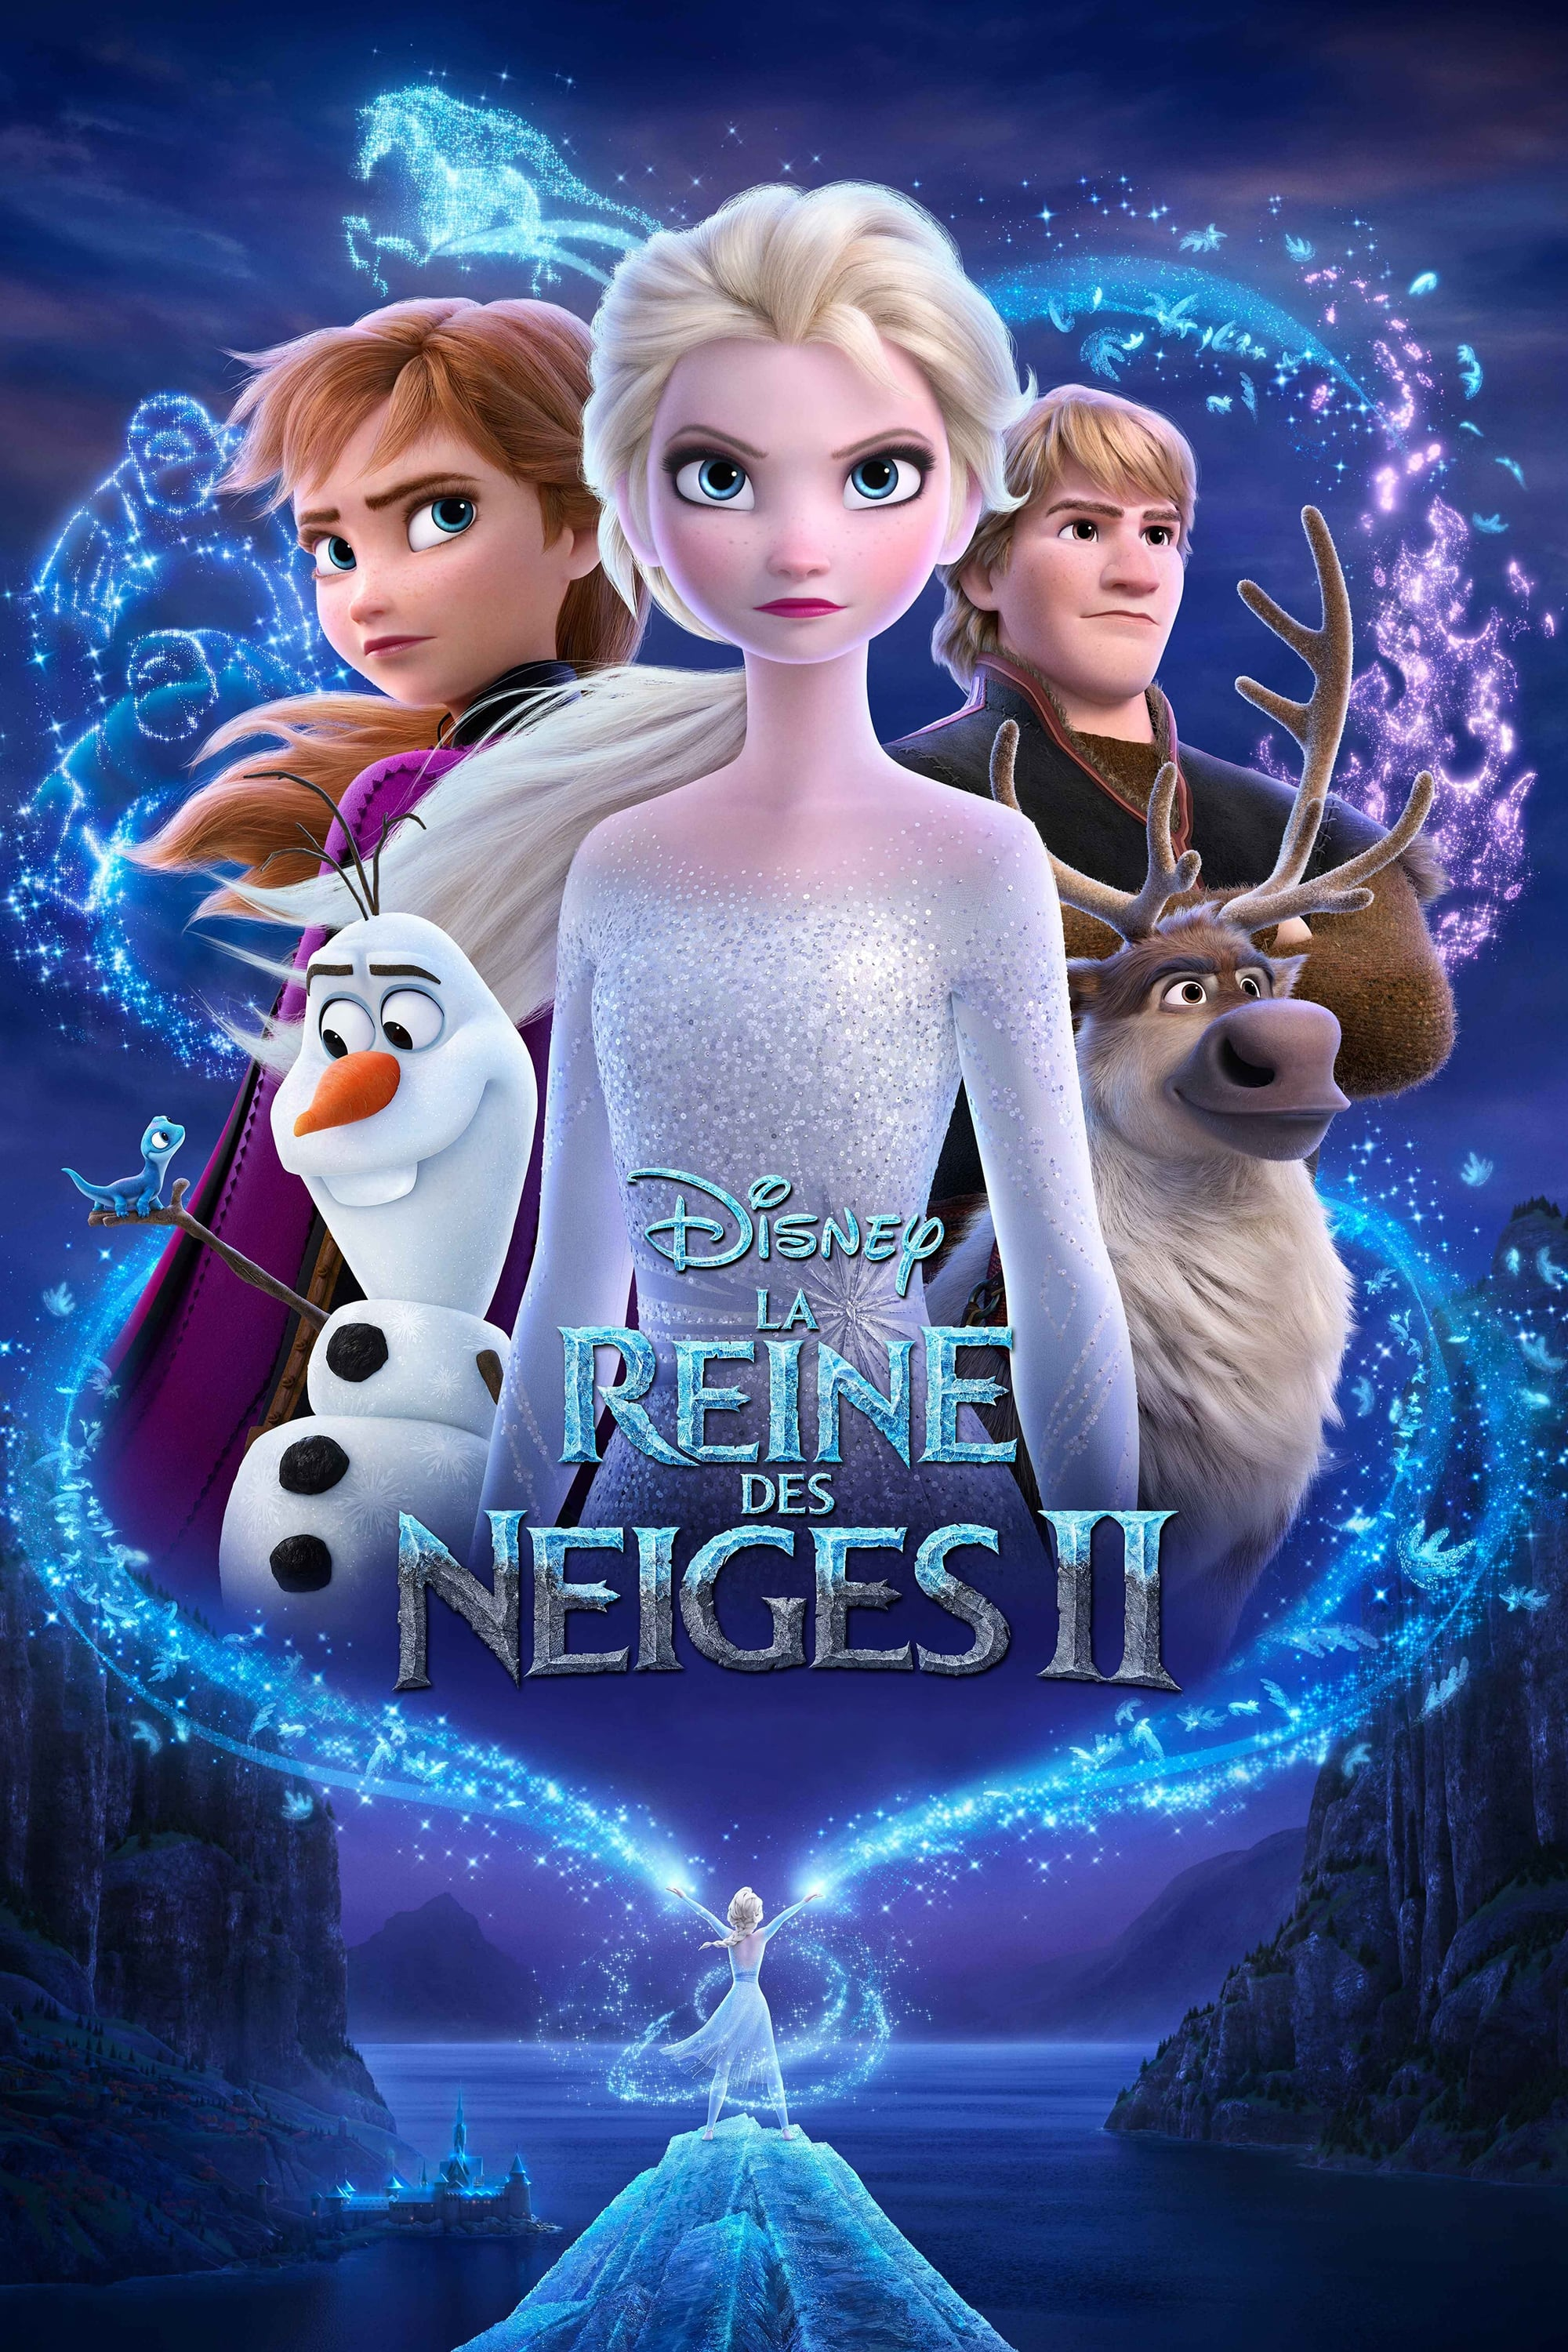 La reine des neiges 2 streaming sur papystreaming-film